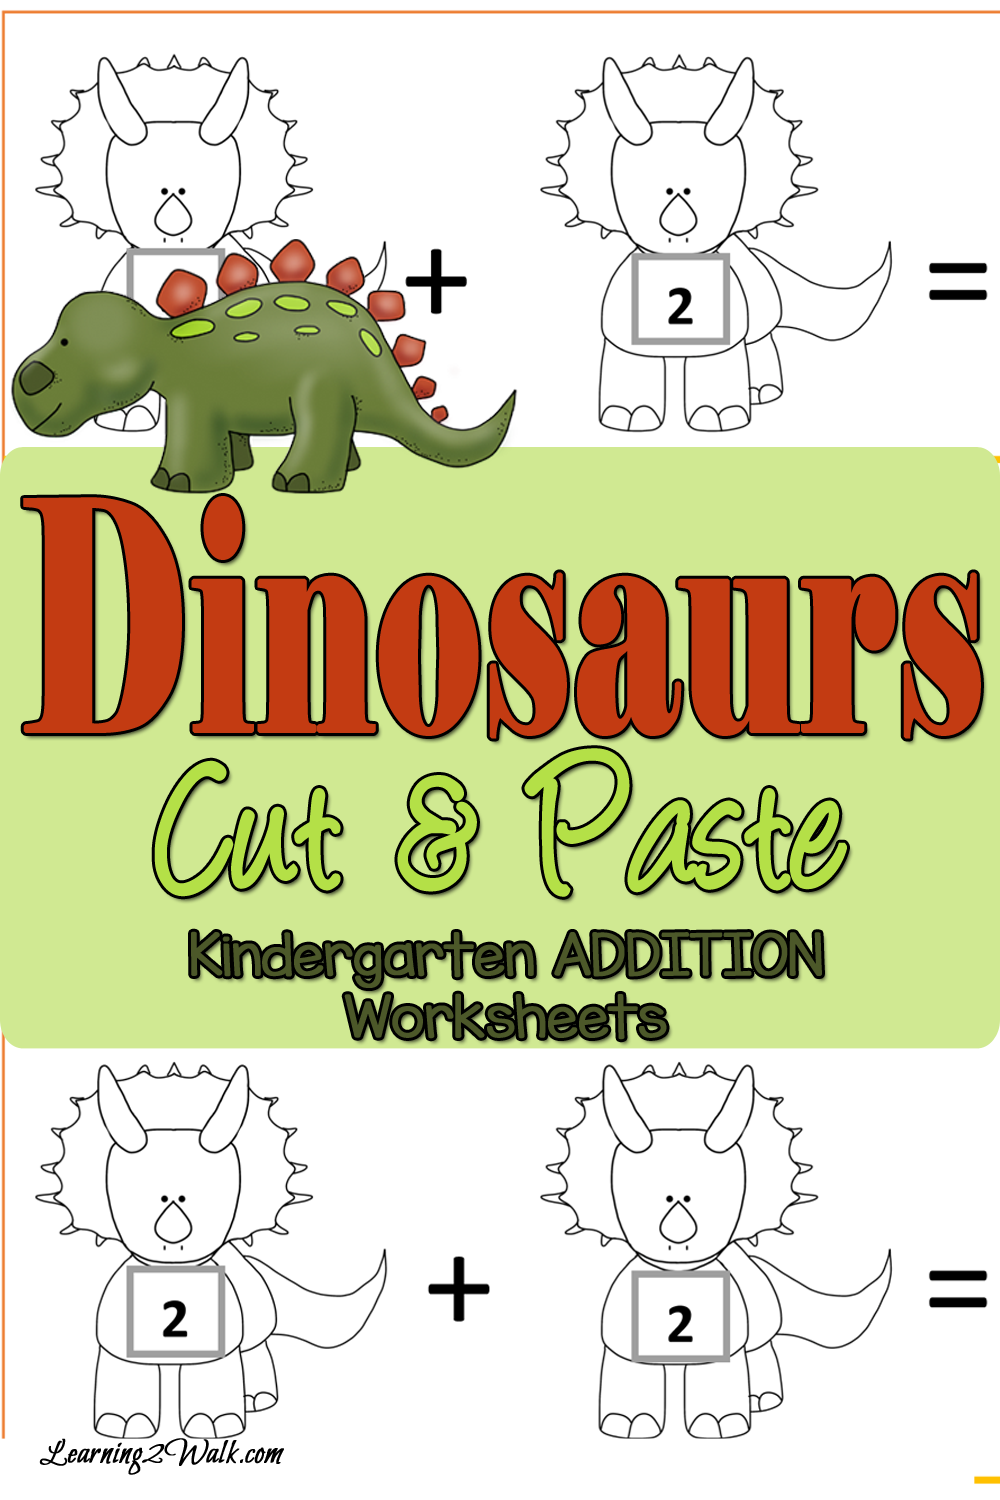 FREE Dinosaurs Cut and Paste Addition Worksheets   Pinterest ...